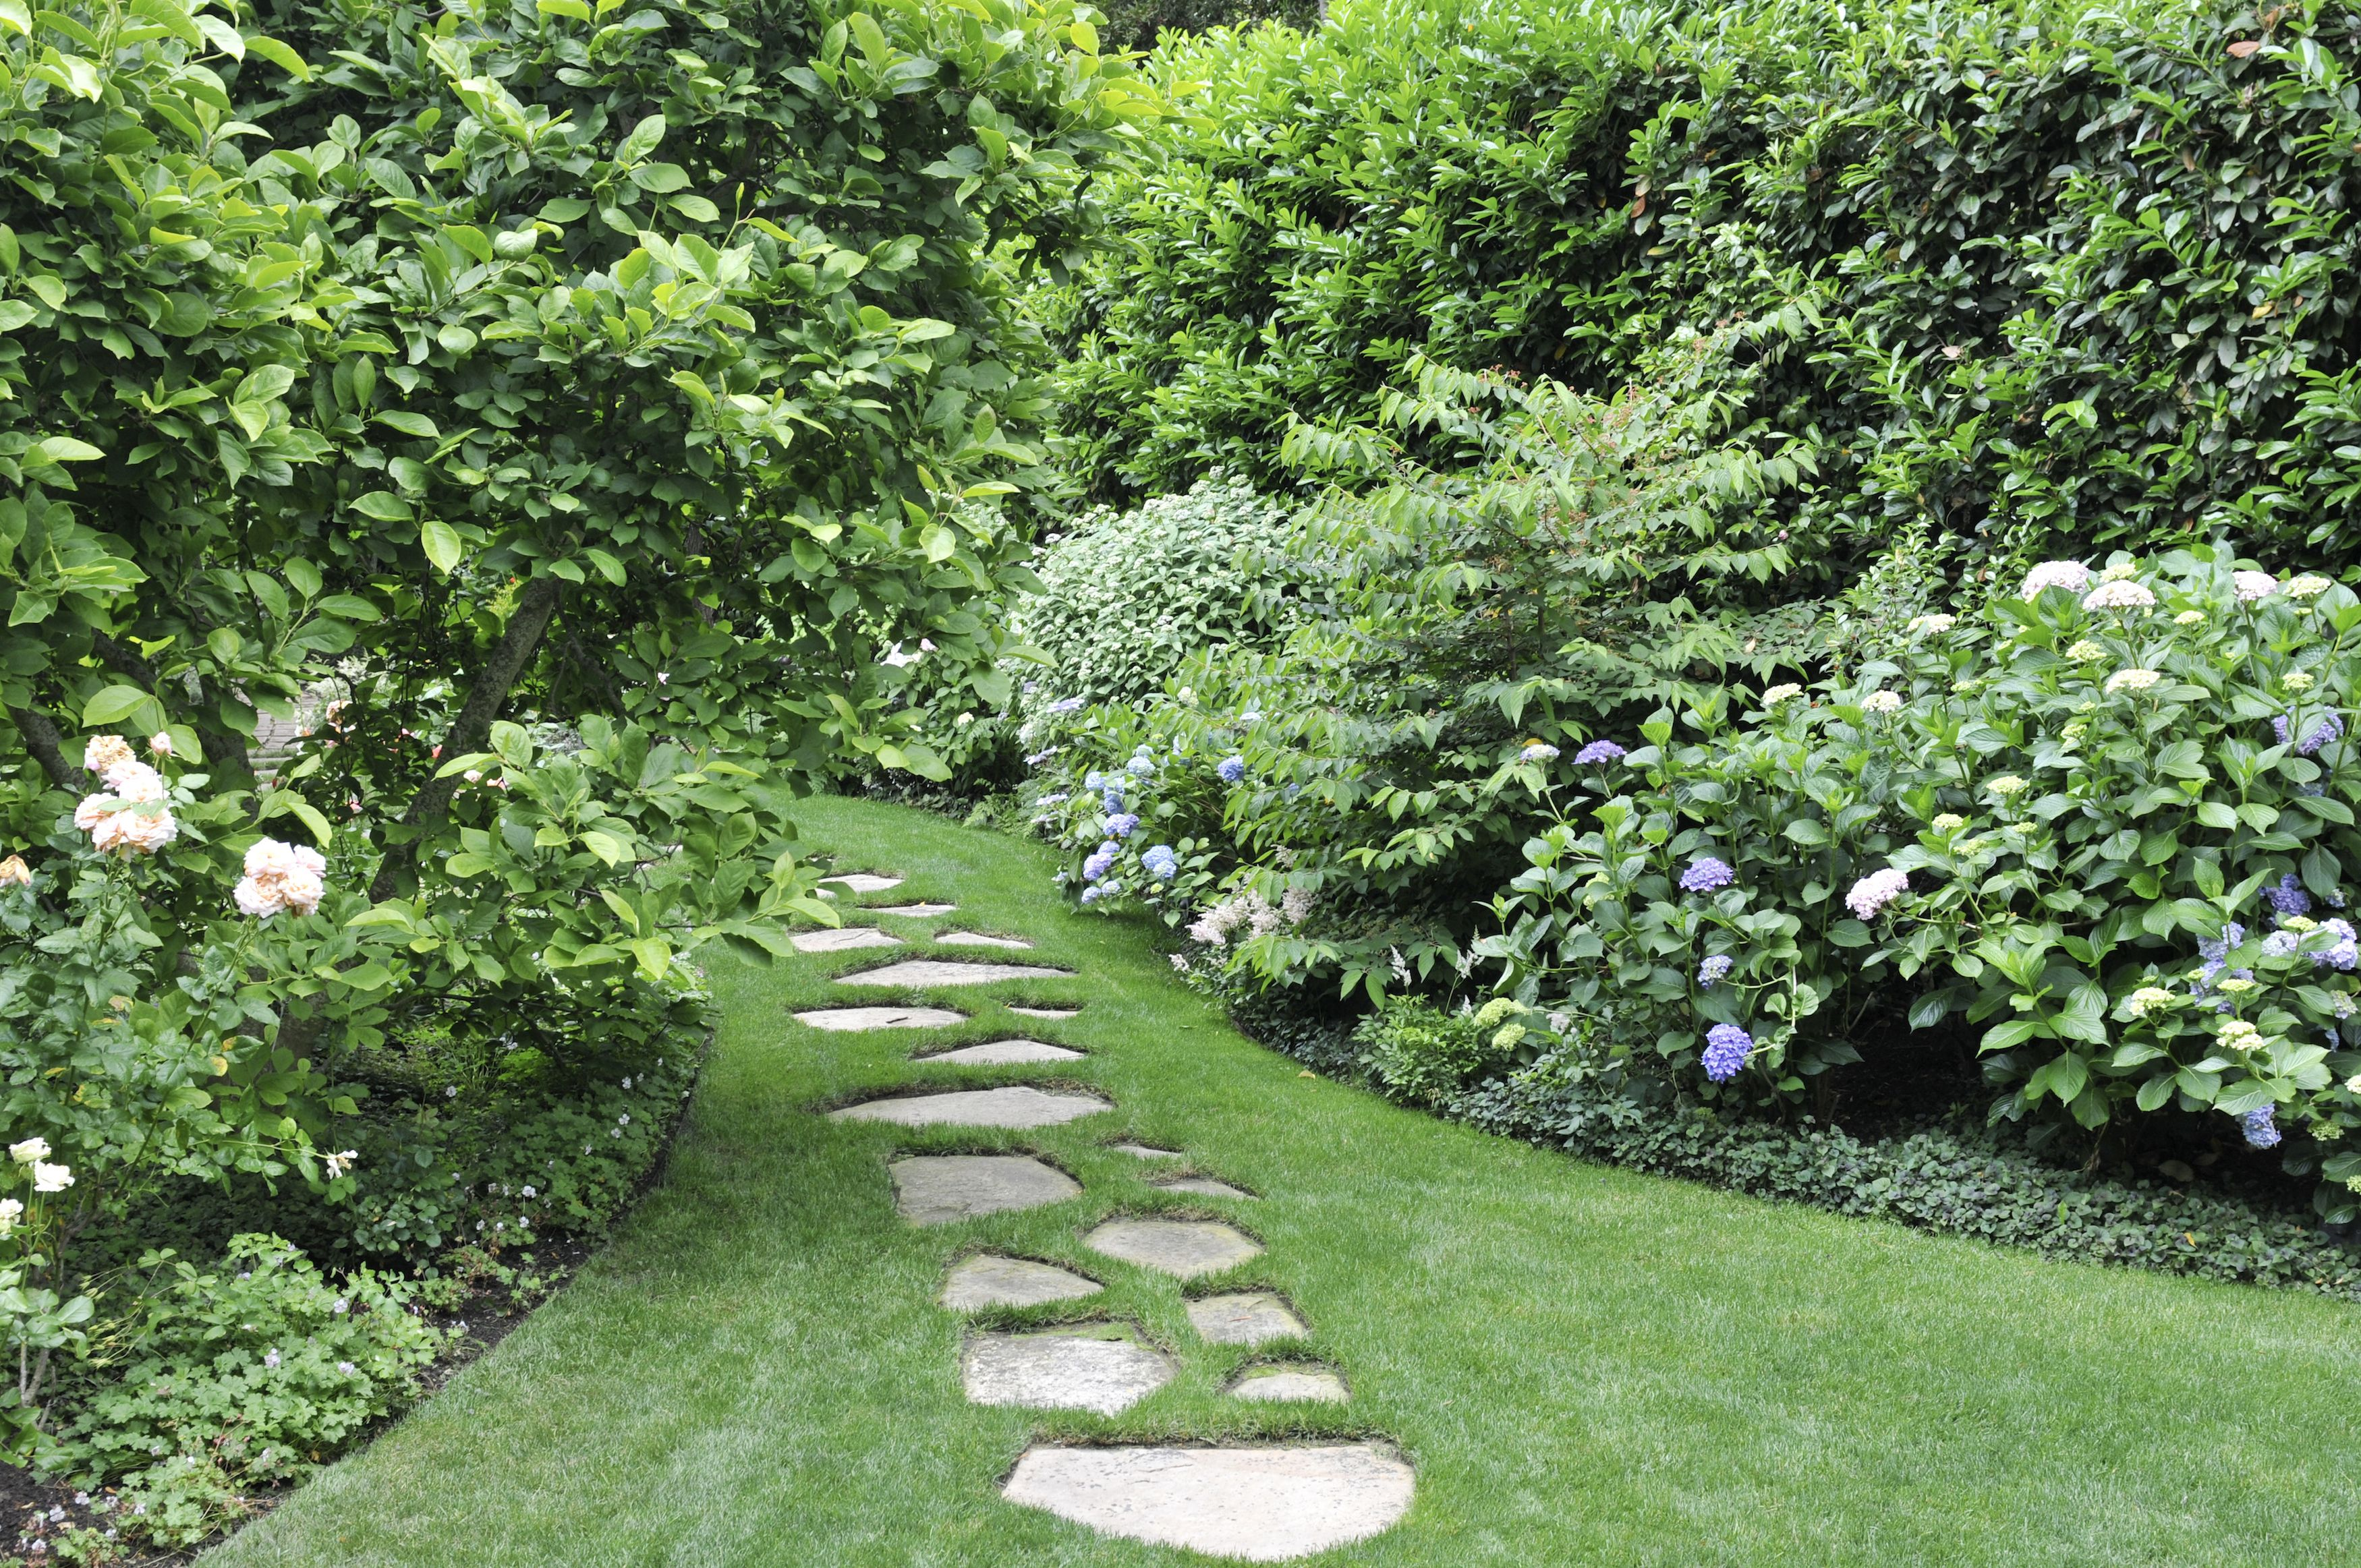 20 Best Yard Landscaping Ideas for Front and Backyard ... on Best Backyard Landscaping id=37333